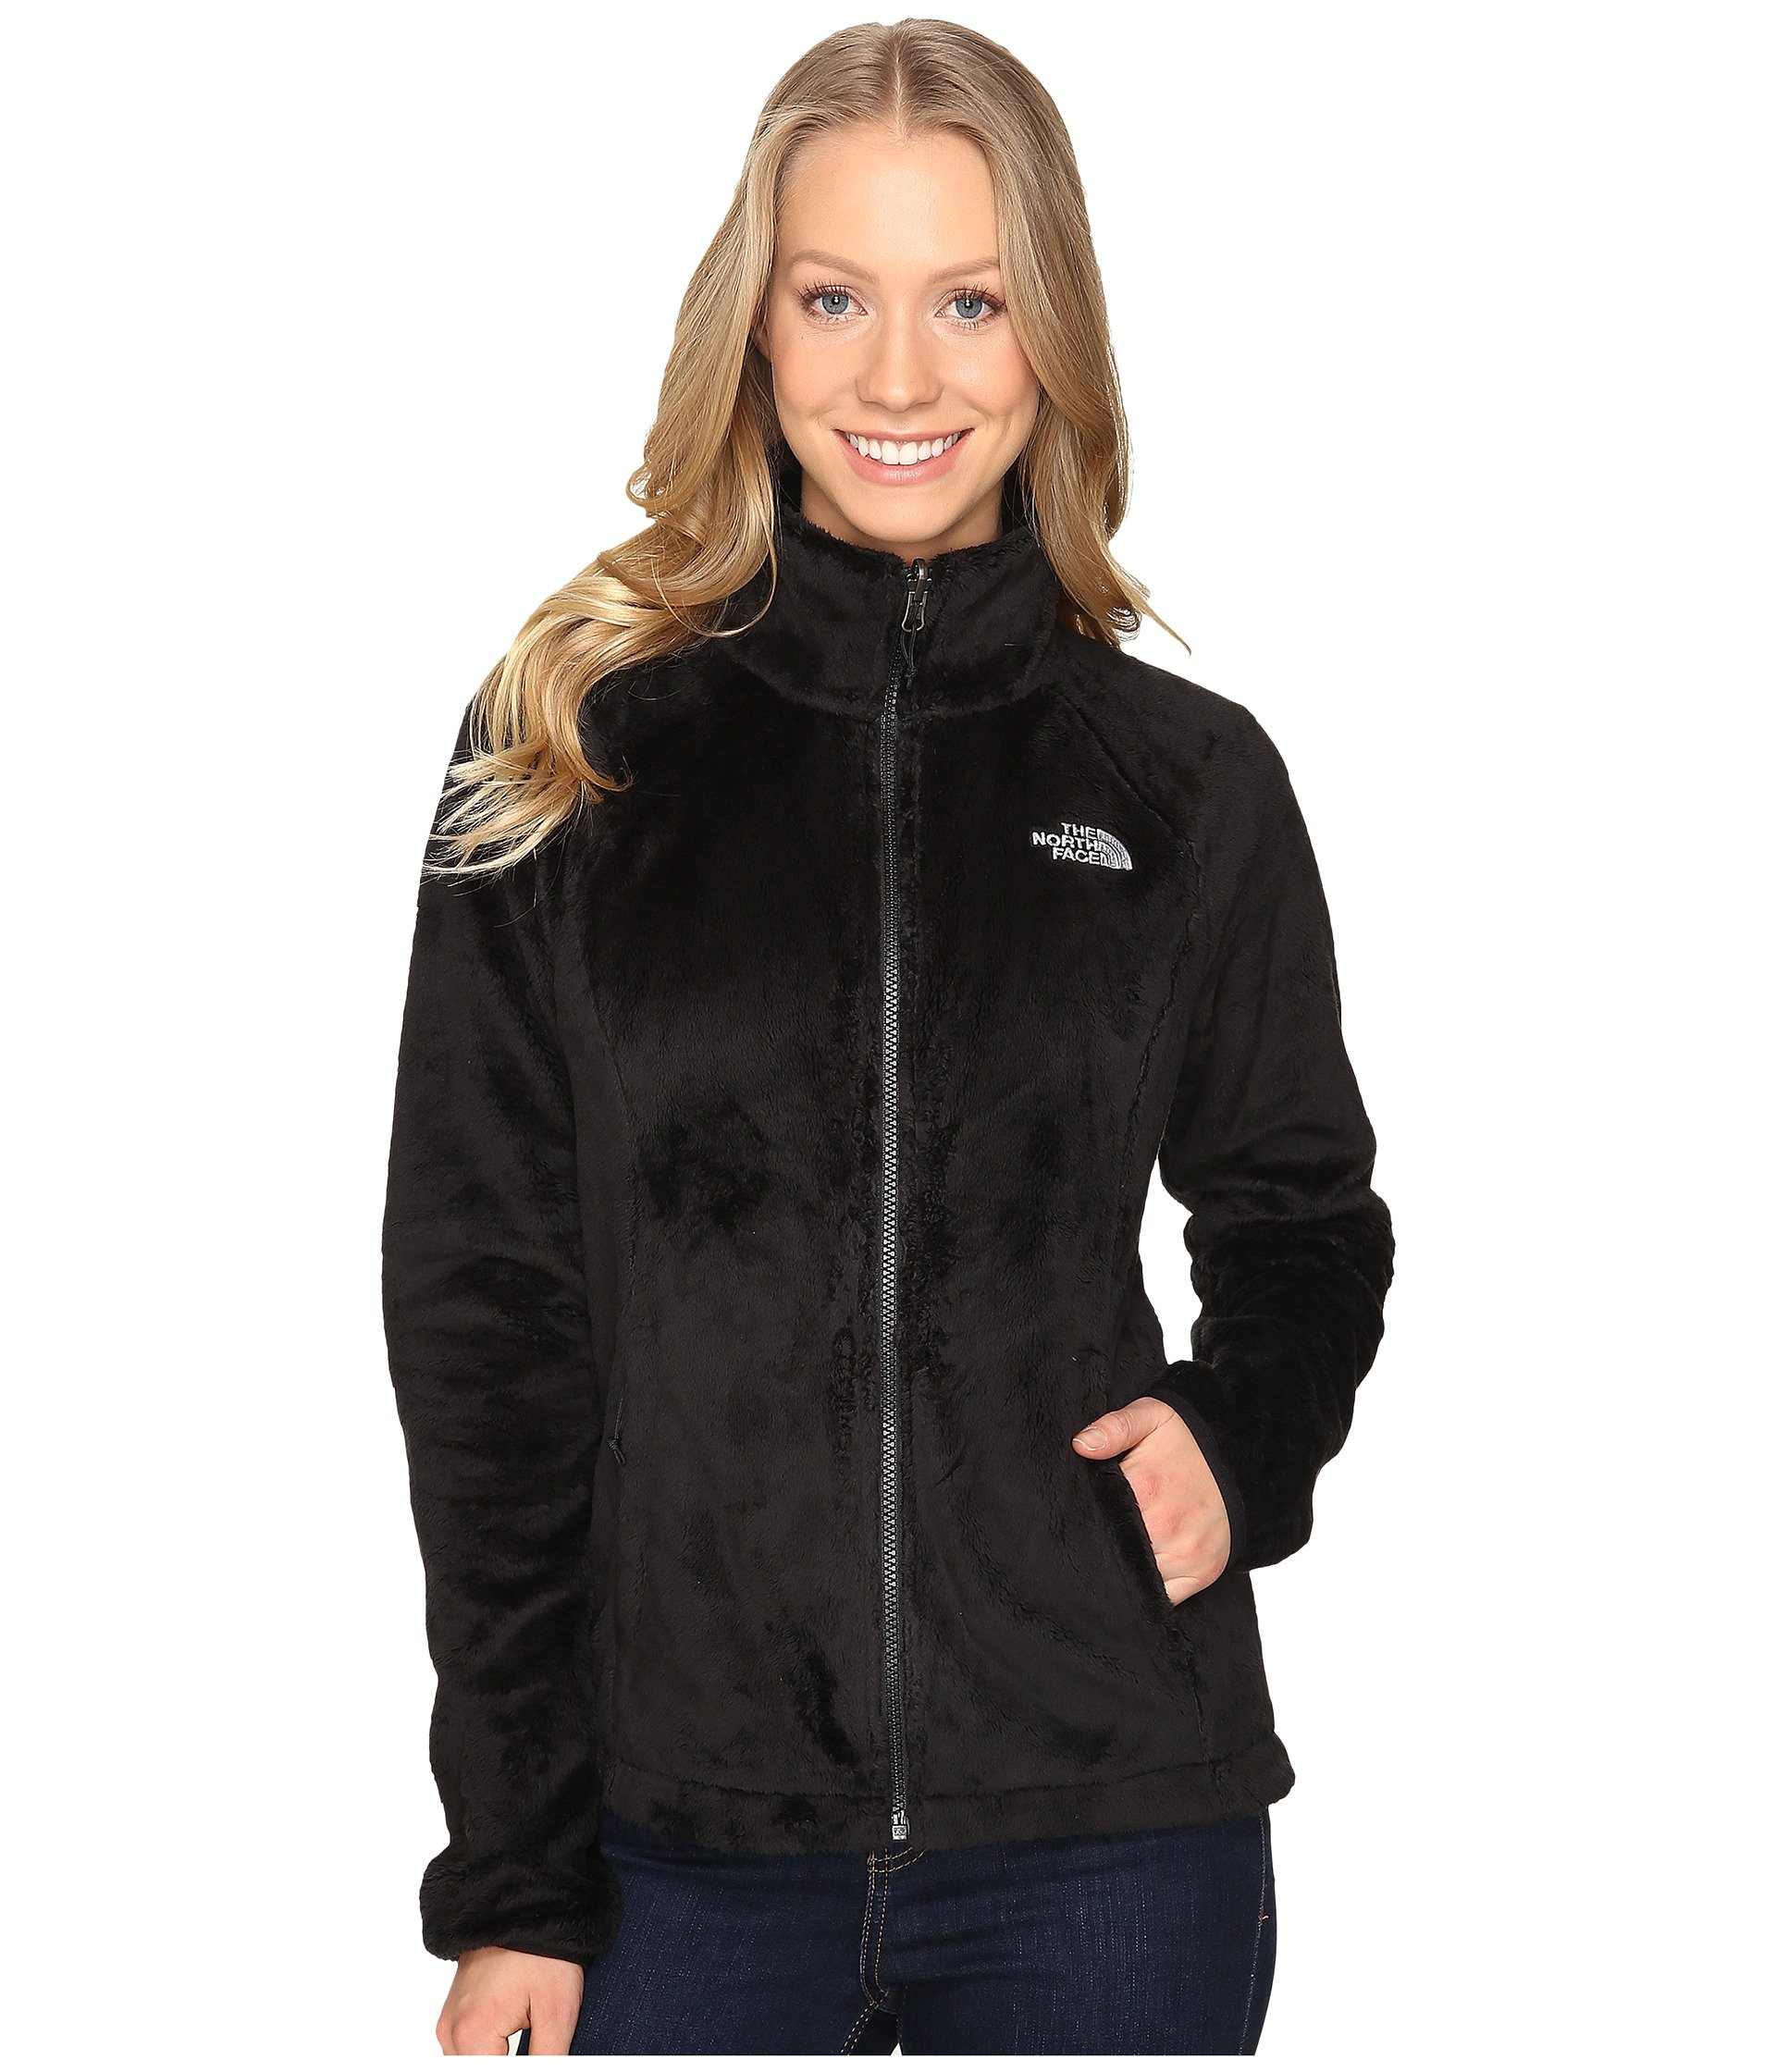 North Face Womens Boundary Triclimate Jacket - Large - Lunar Ice Grey/TNF Black by The North Face (Image #8)